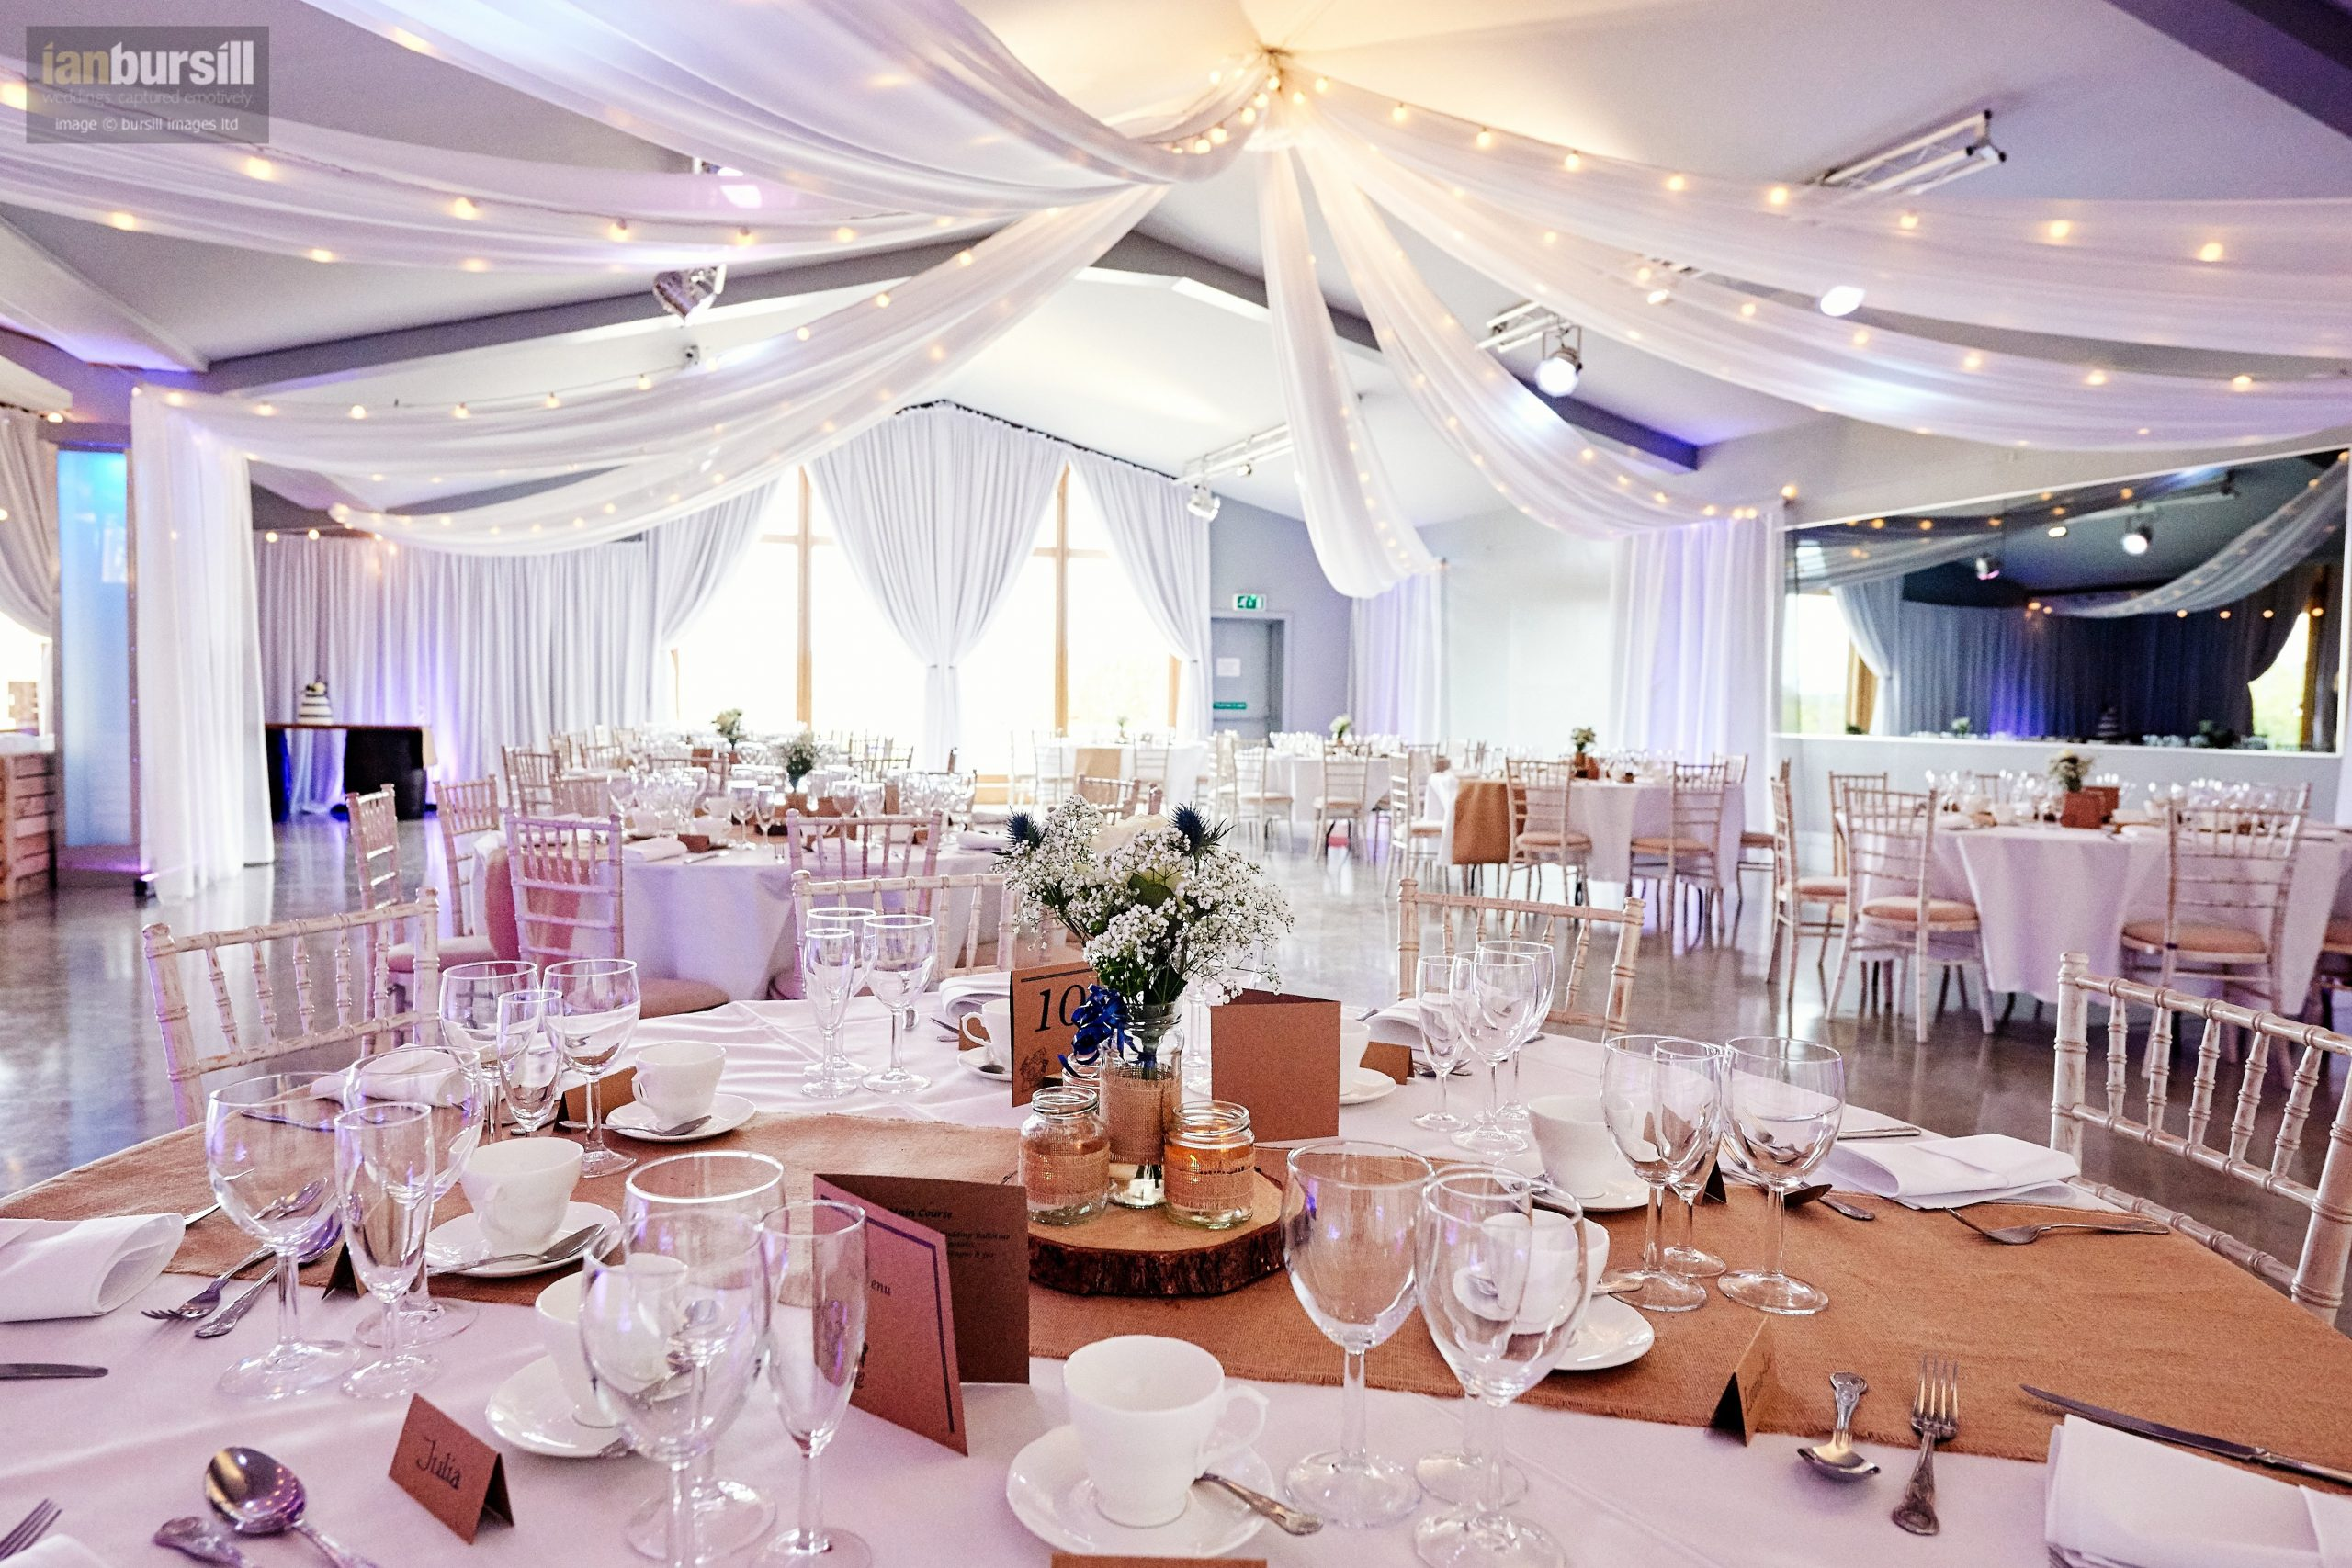 ladywood estate wedding decor with wedding venue drapes